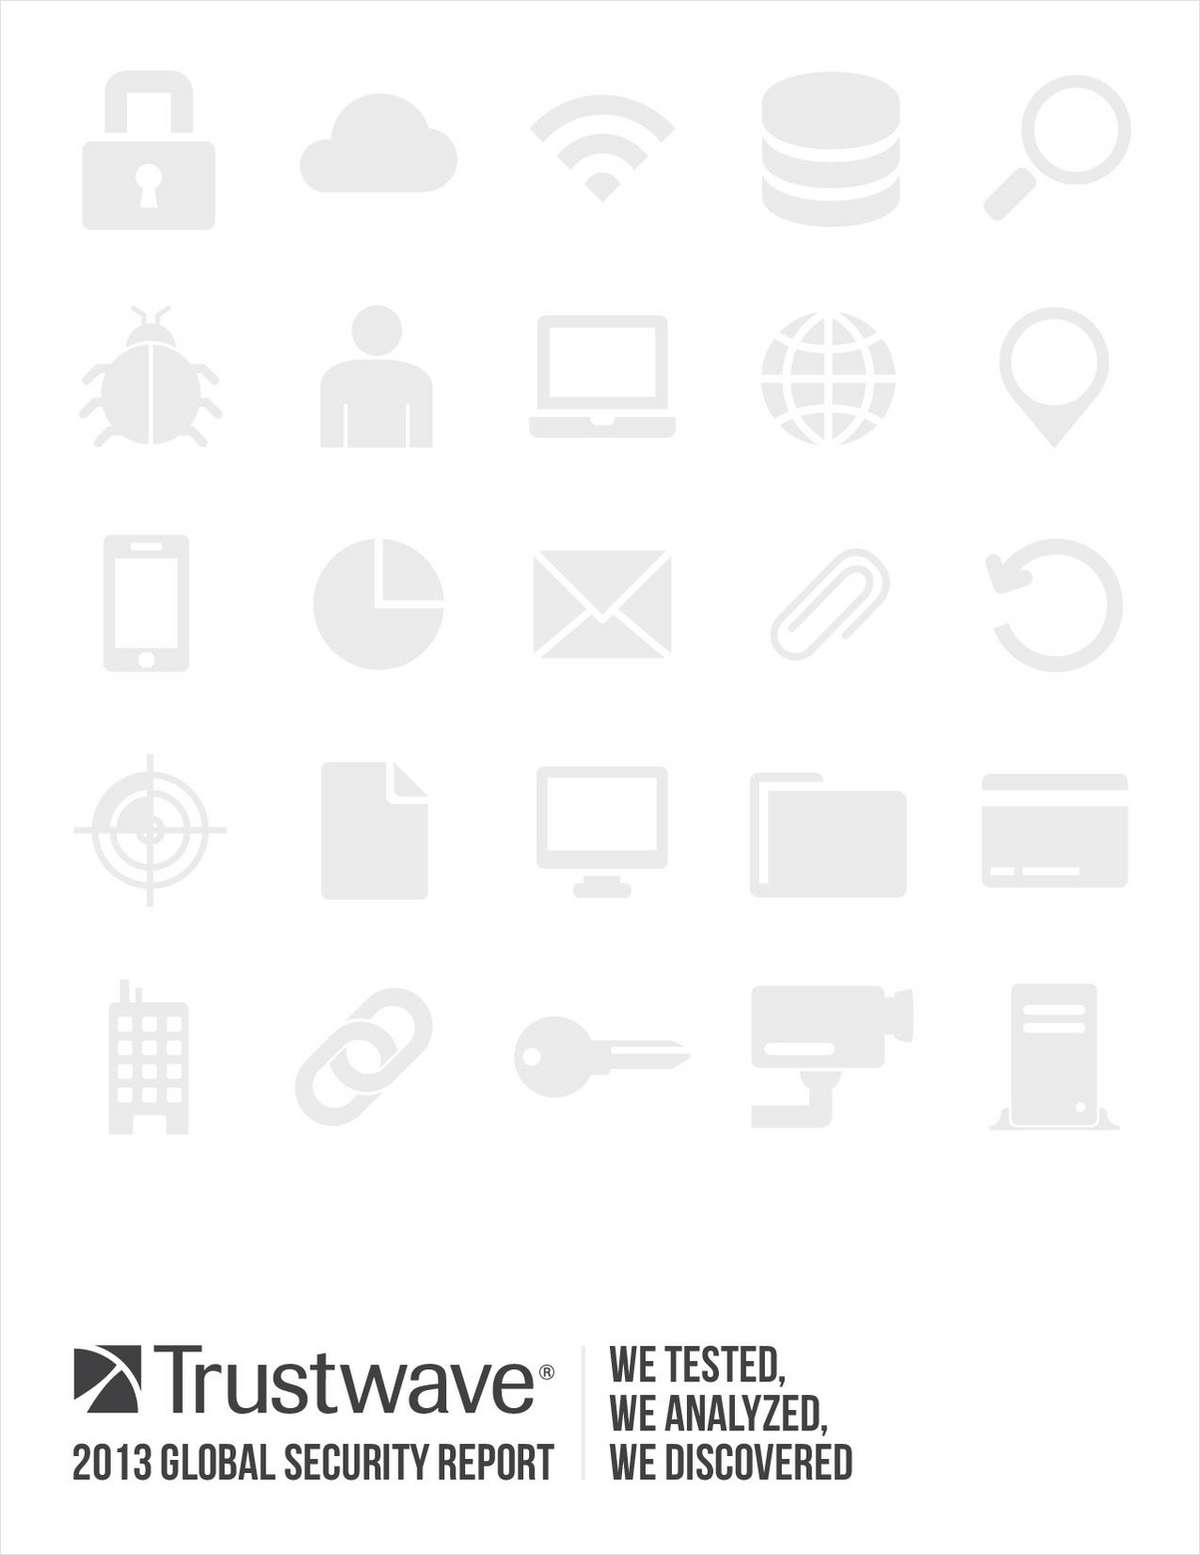 2013 Trustwave Global Security Report